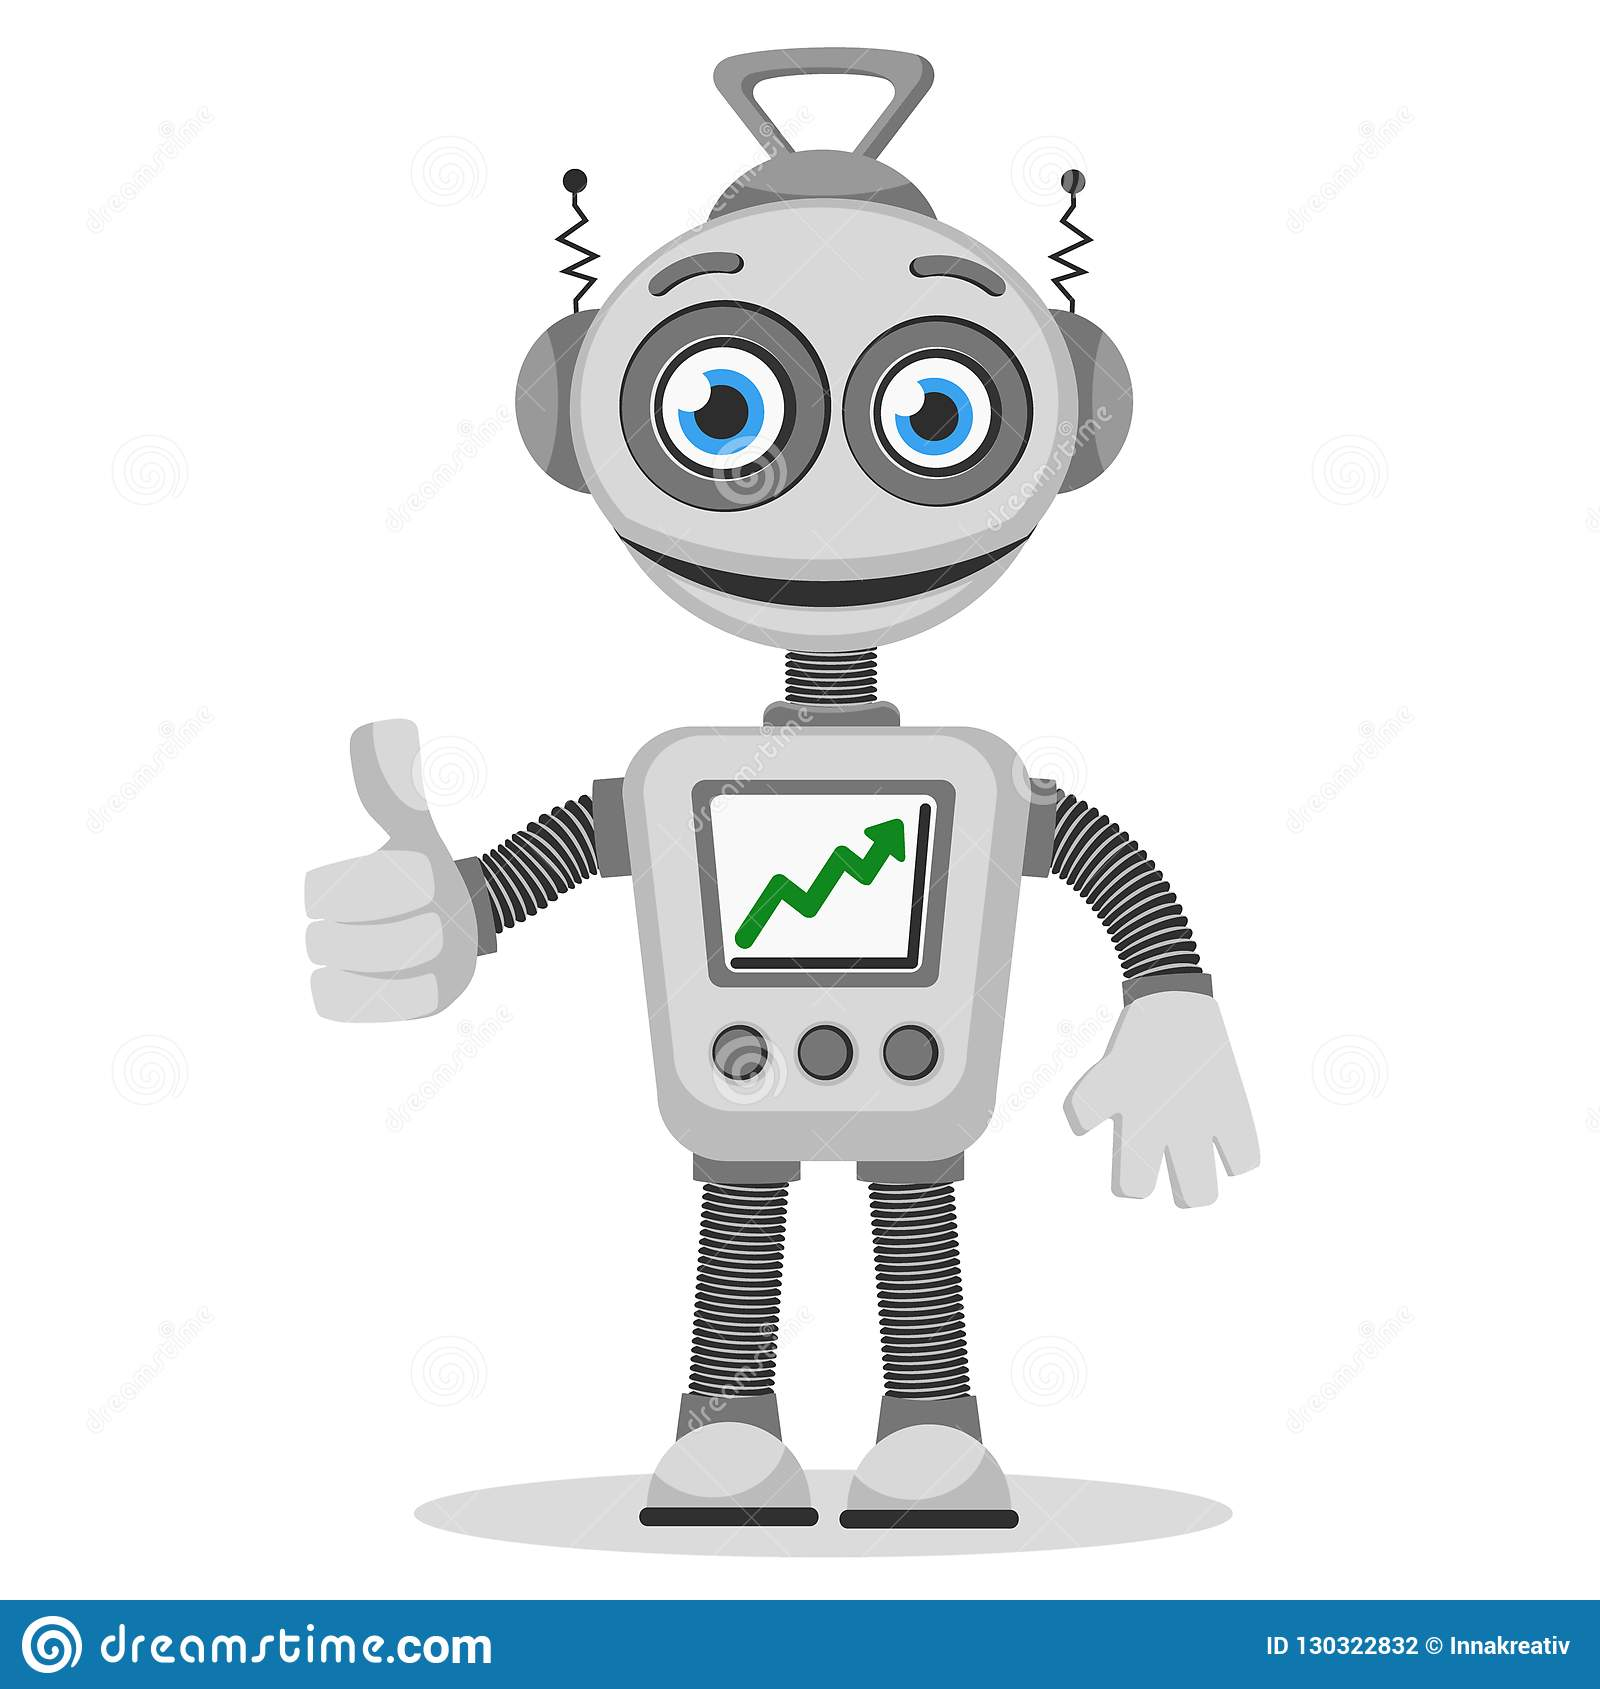 The robot with the graph up on the screen shows like